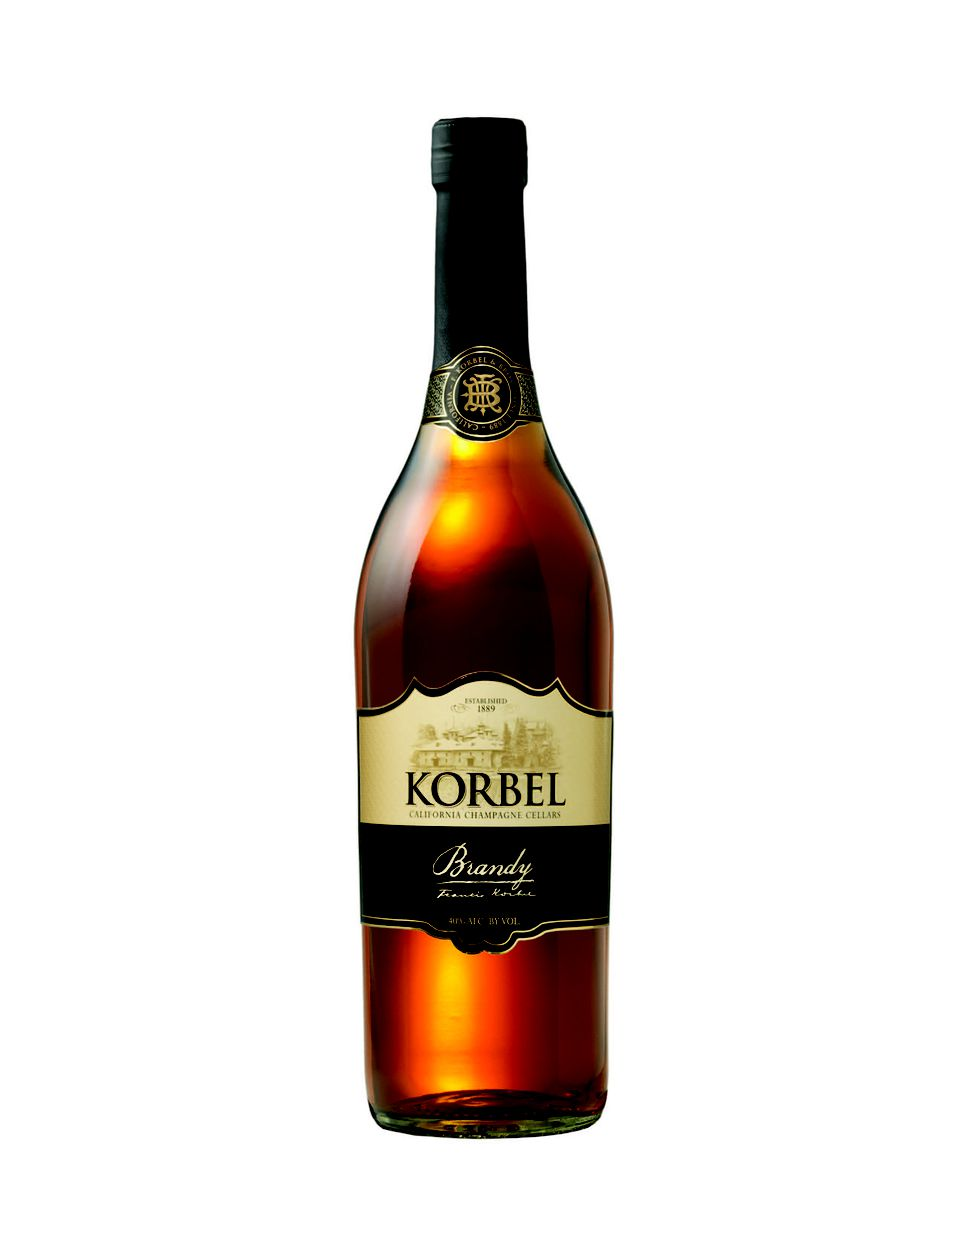 Korbel Brandy - California American Brandy